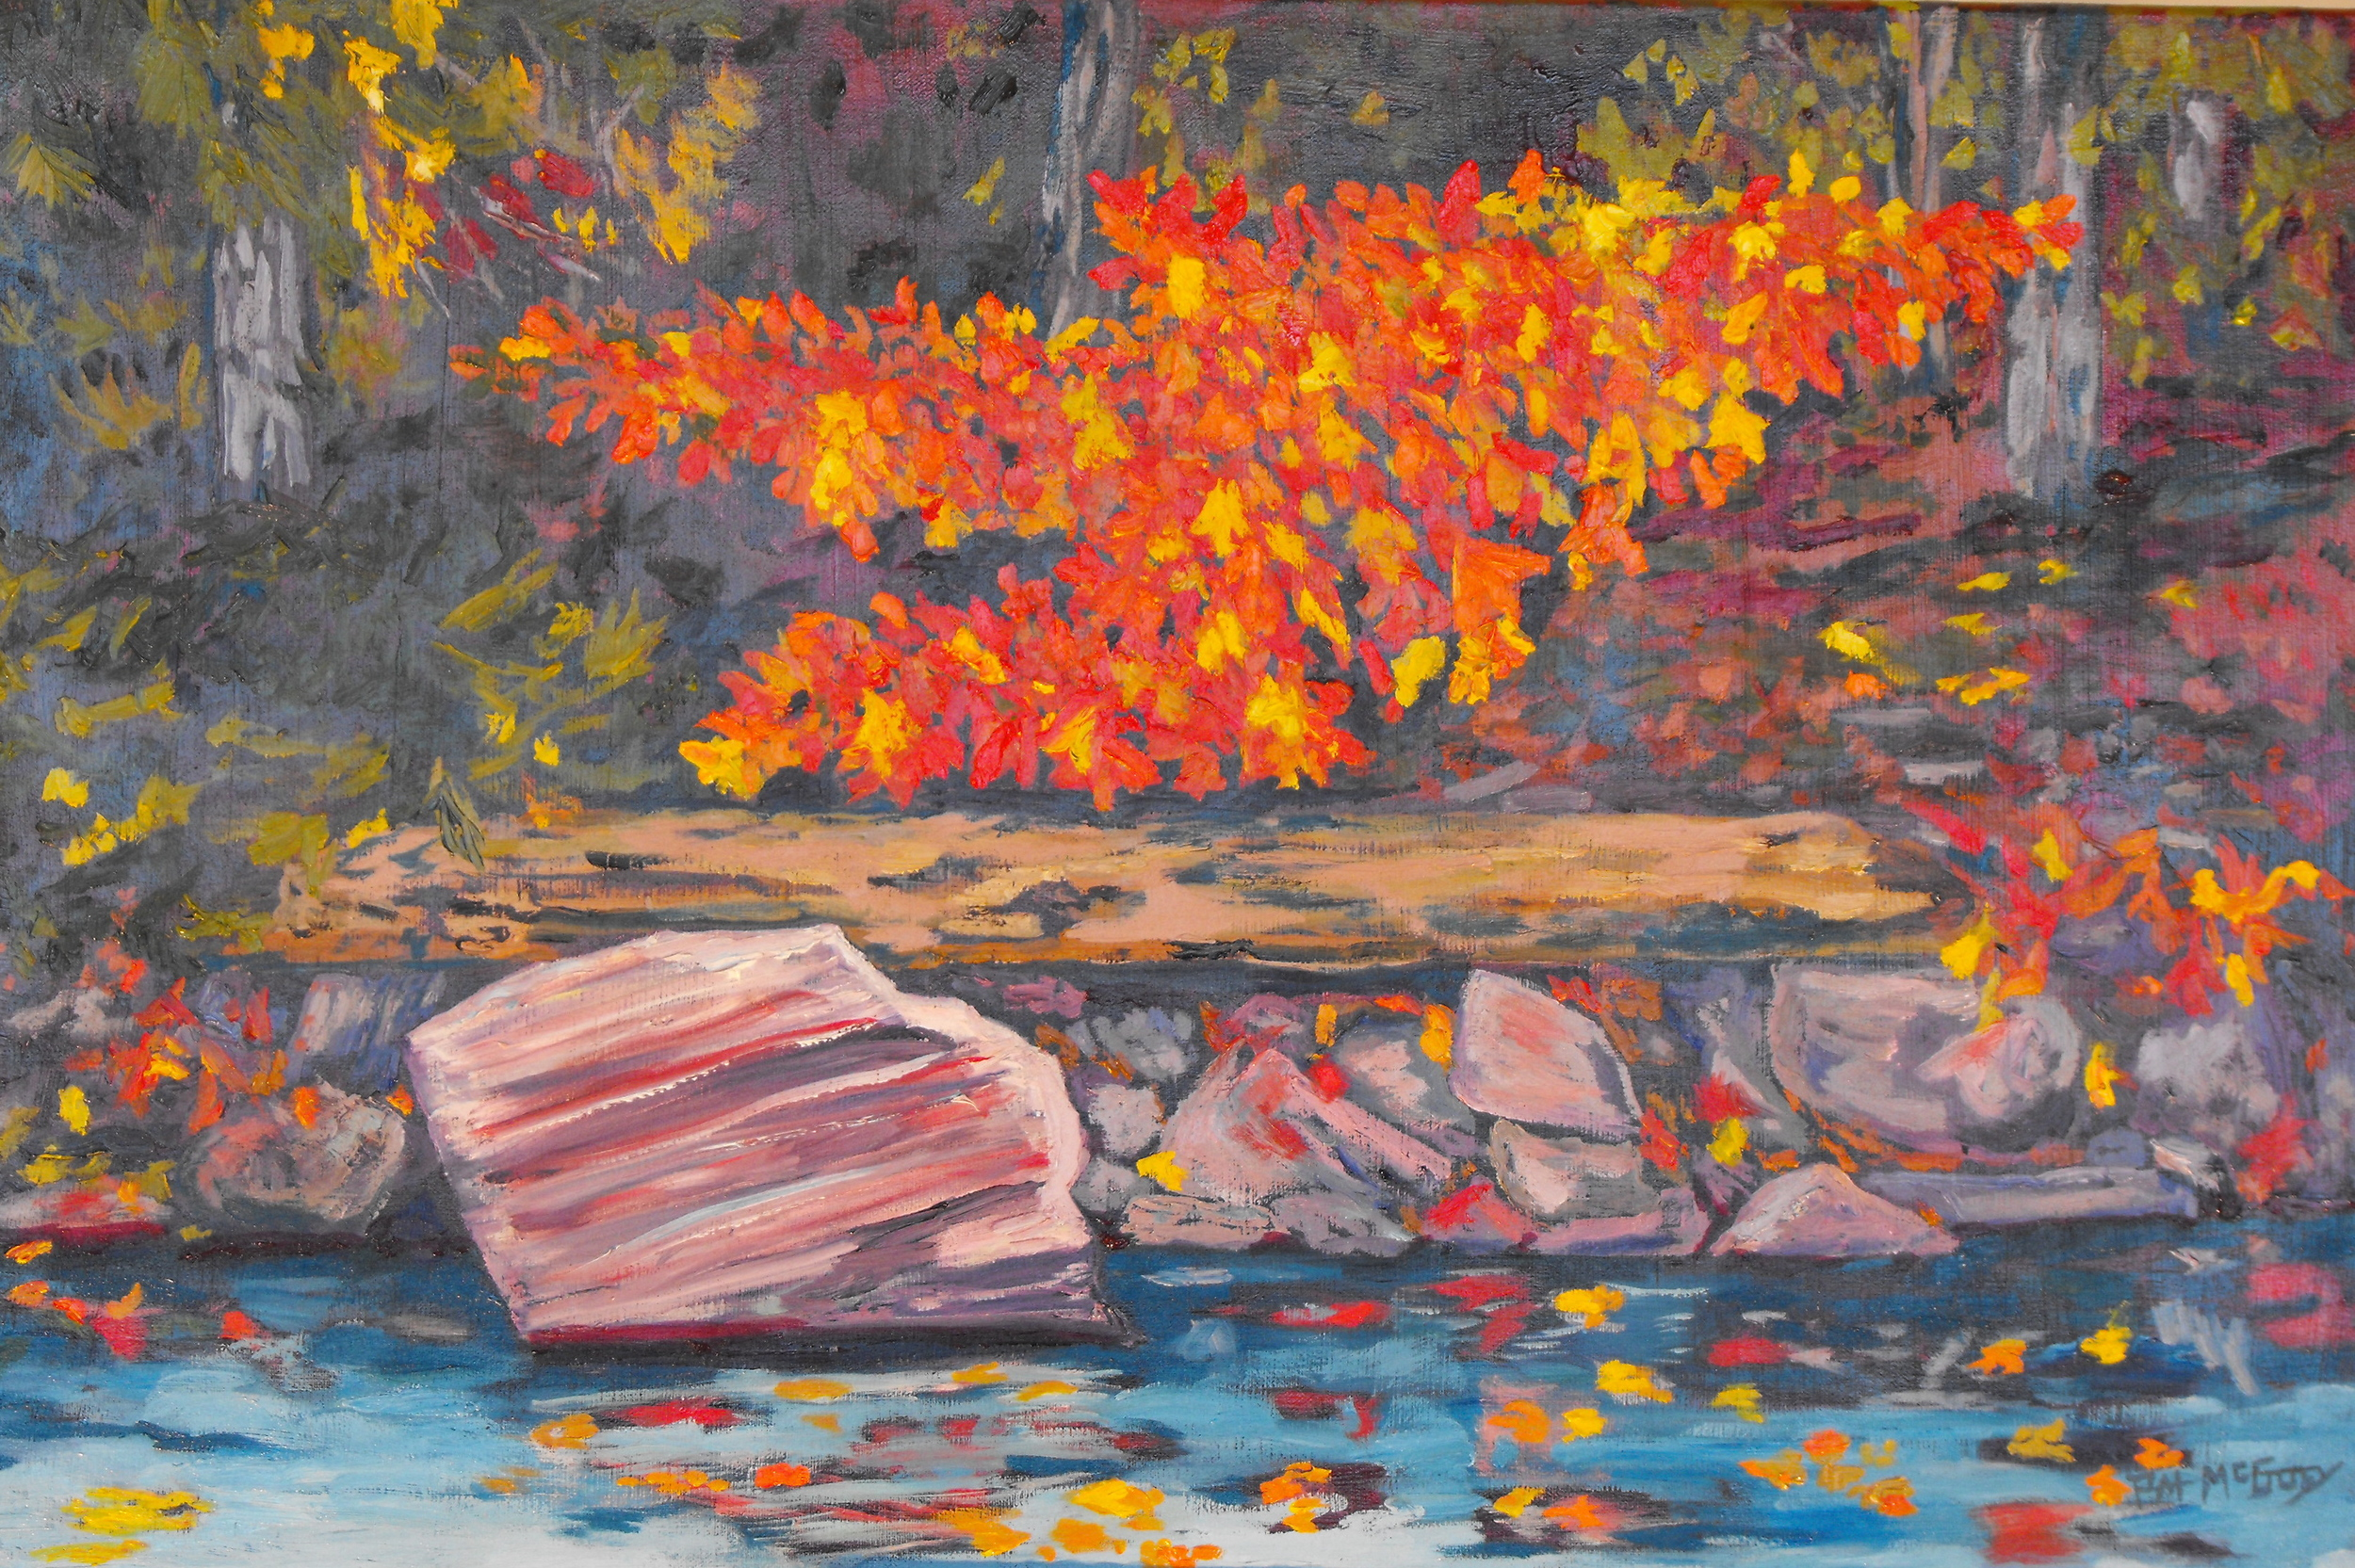 Algonquin Paddle, 24 X 36, Oil on Canvas